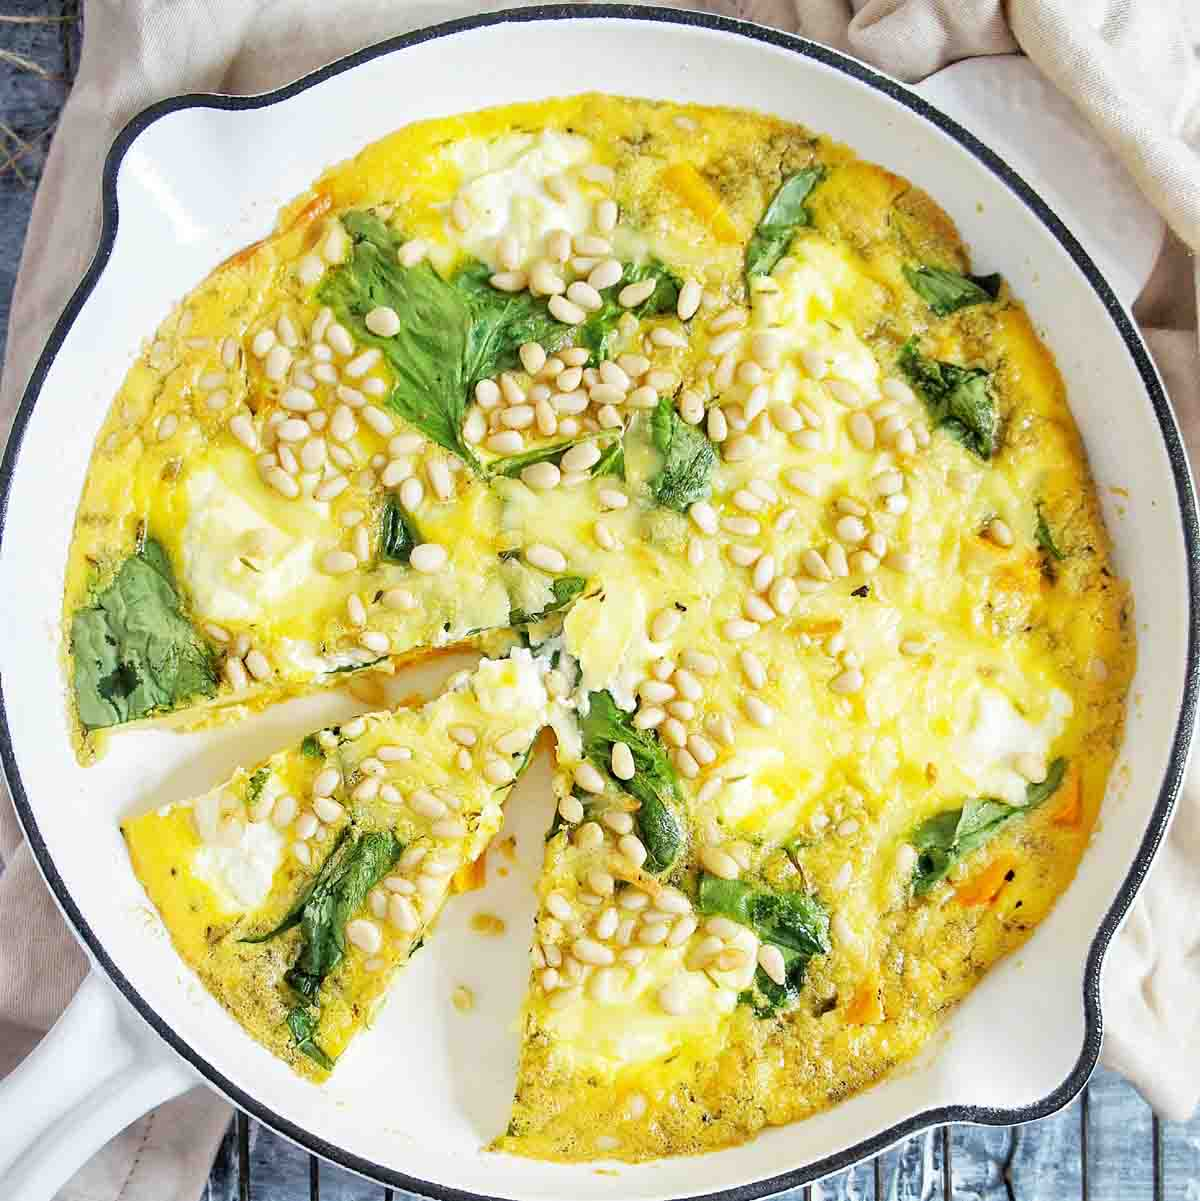 Pumpkin Frittata in a white skillet cropped image